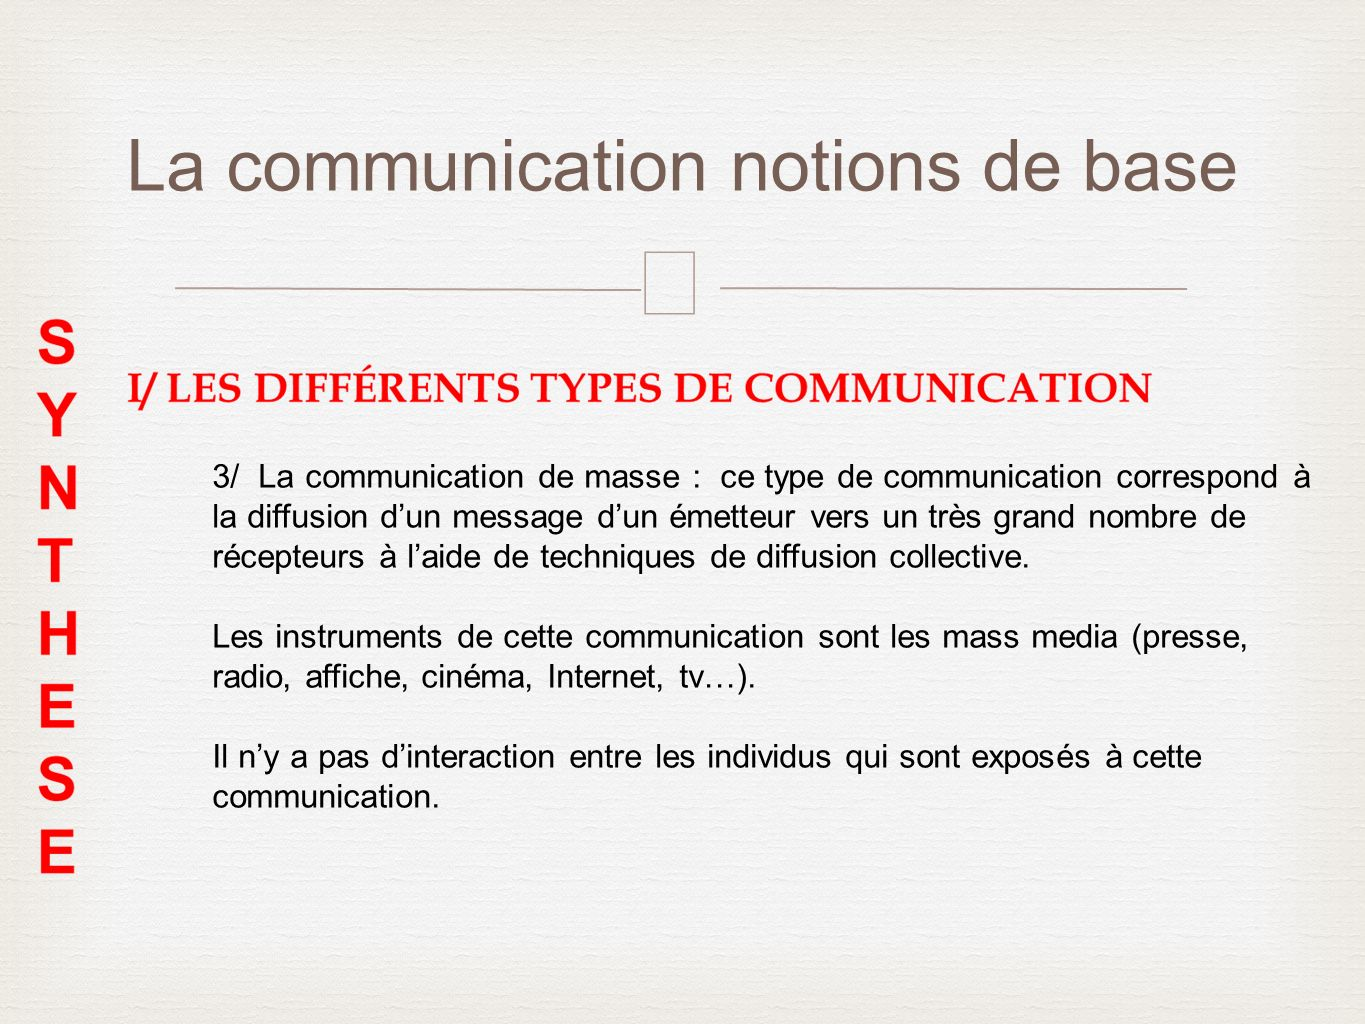 La communication notions de base